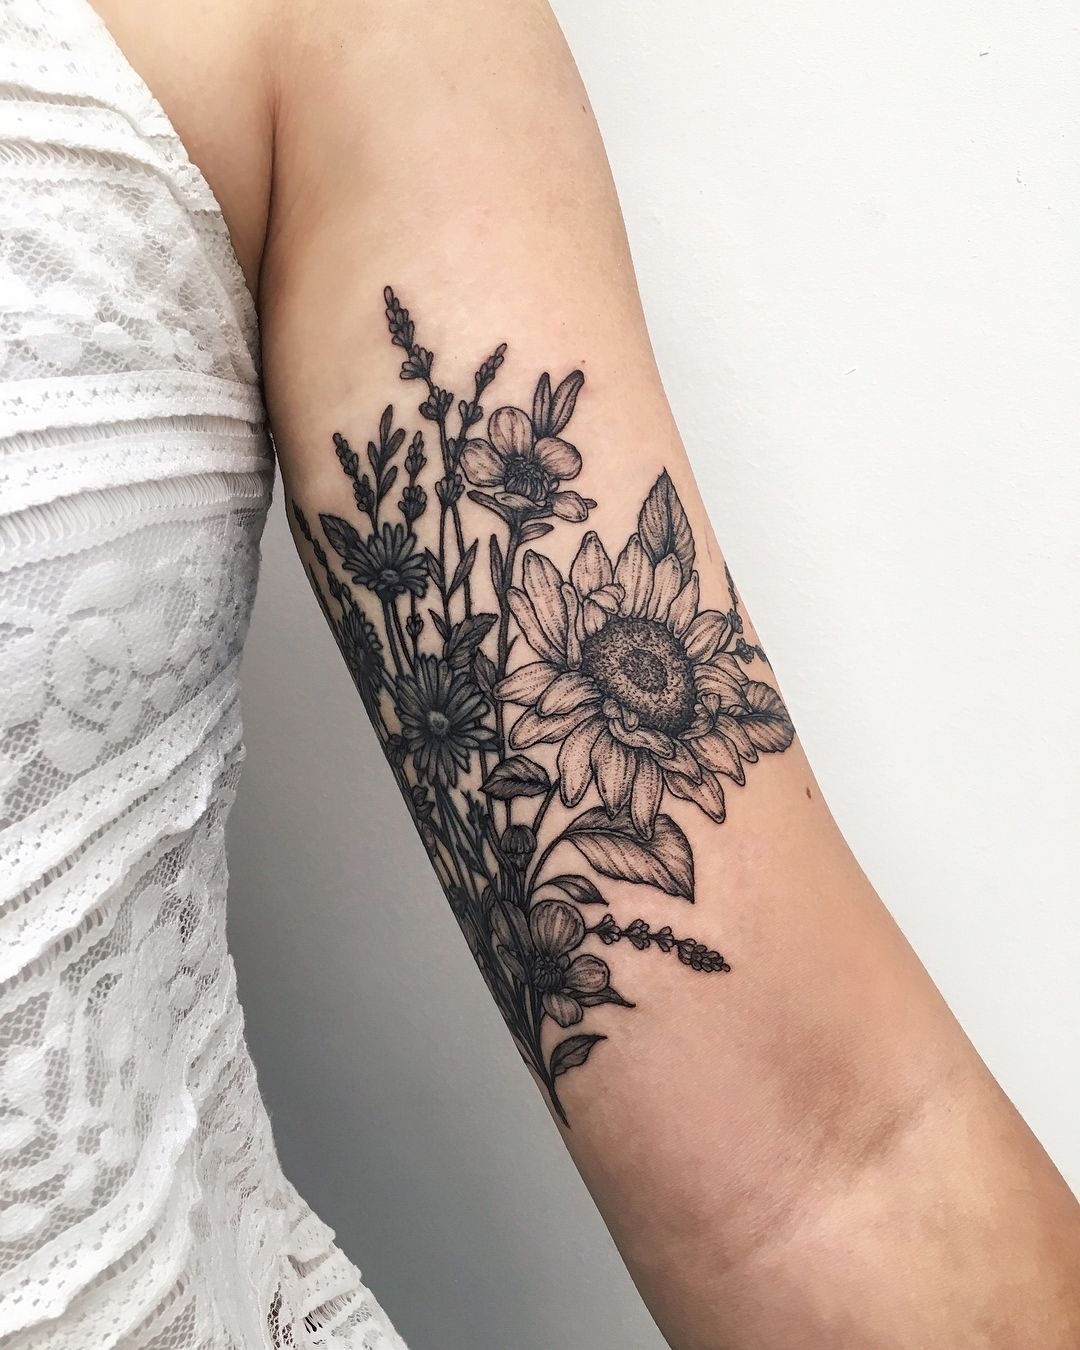 "Yaana Gyach on Instagram: ""have added some manuka flowers🌸, sunflowers🌻 and lavender 🍃 to existing tattoo of daisies (🌼done not by me) ••••• #ygtattooing #gyachyaana…"""